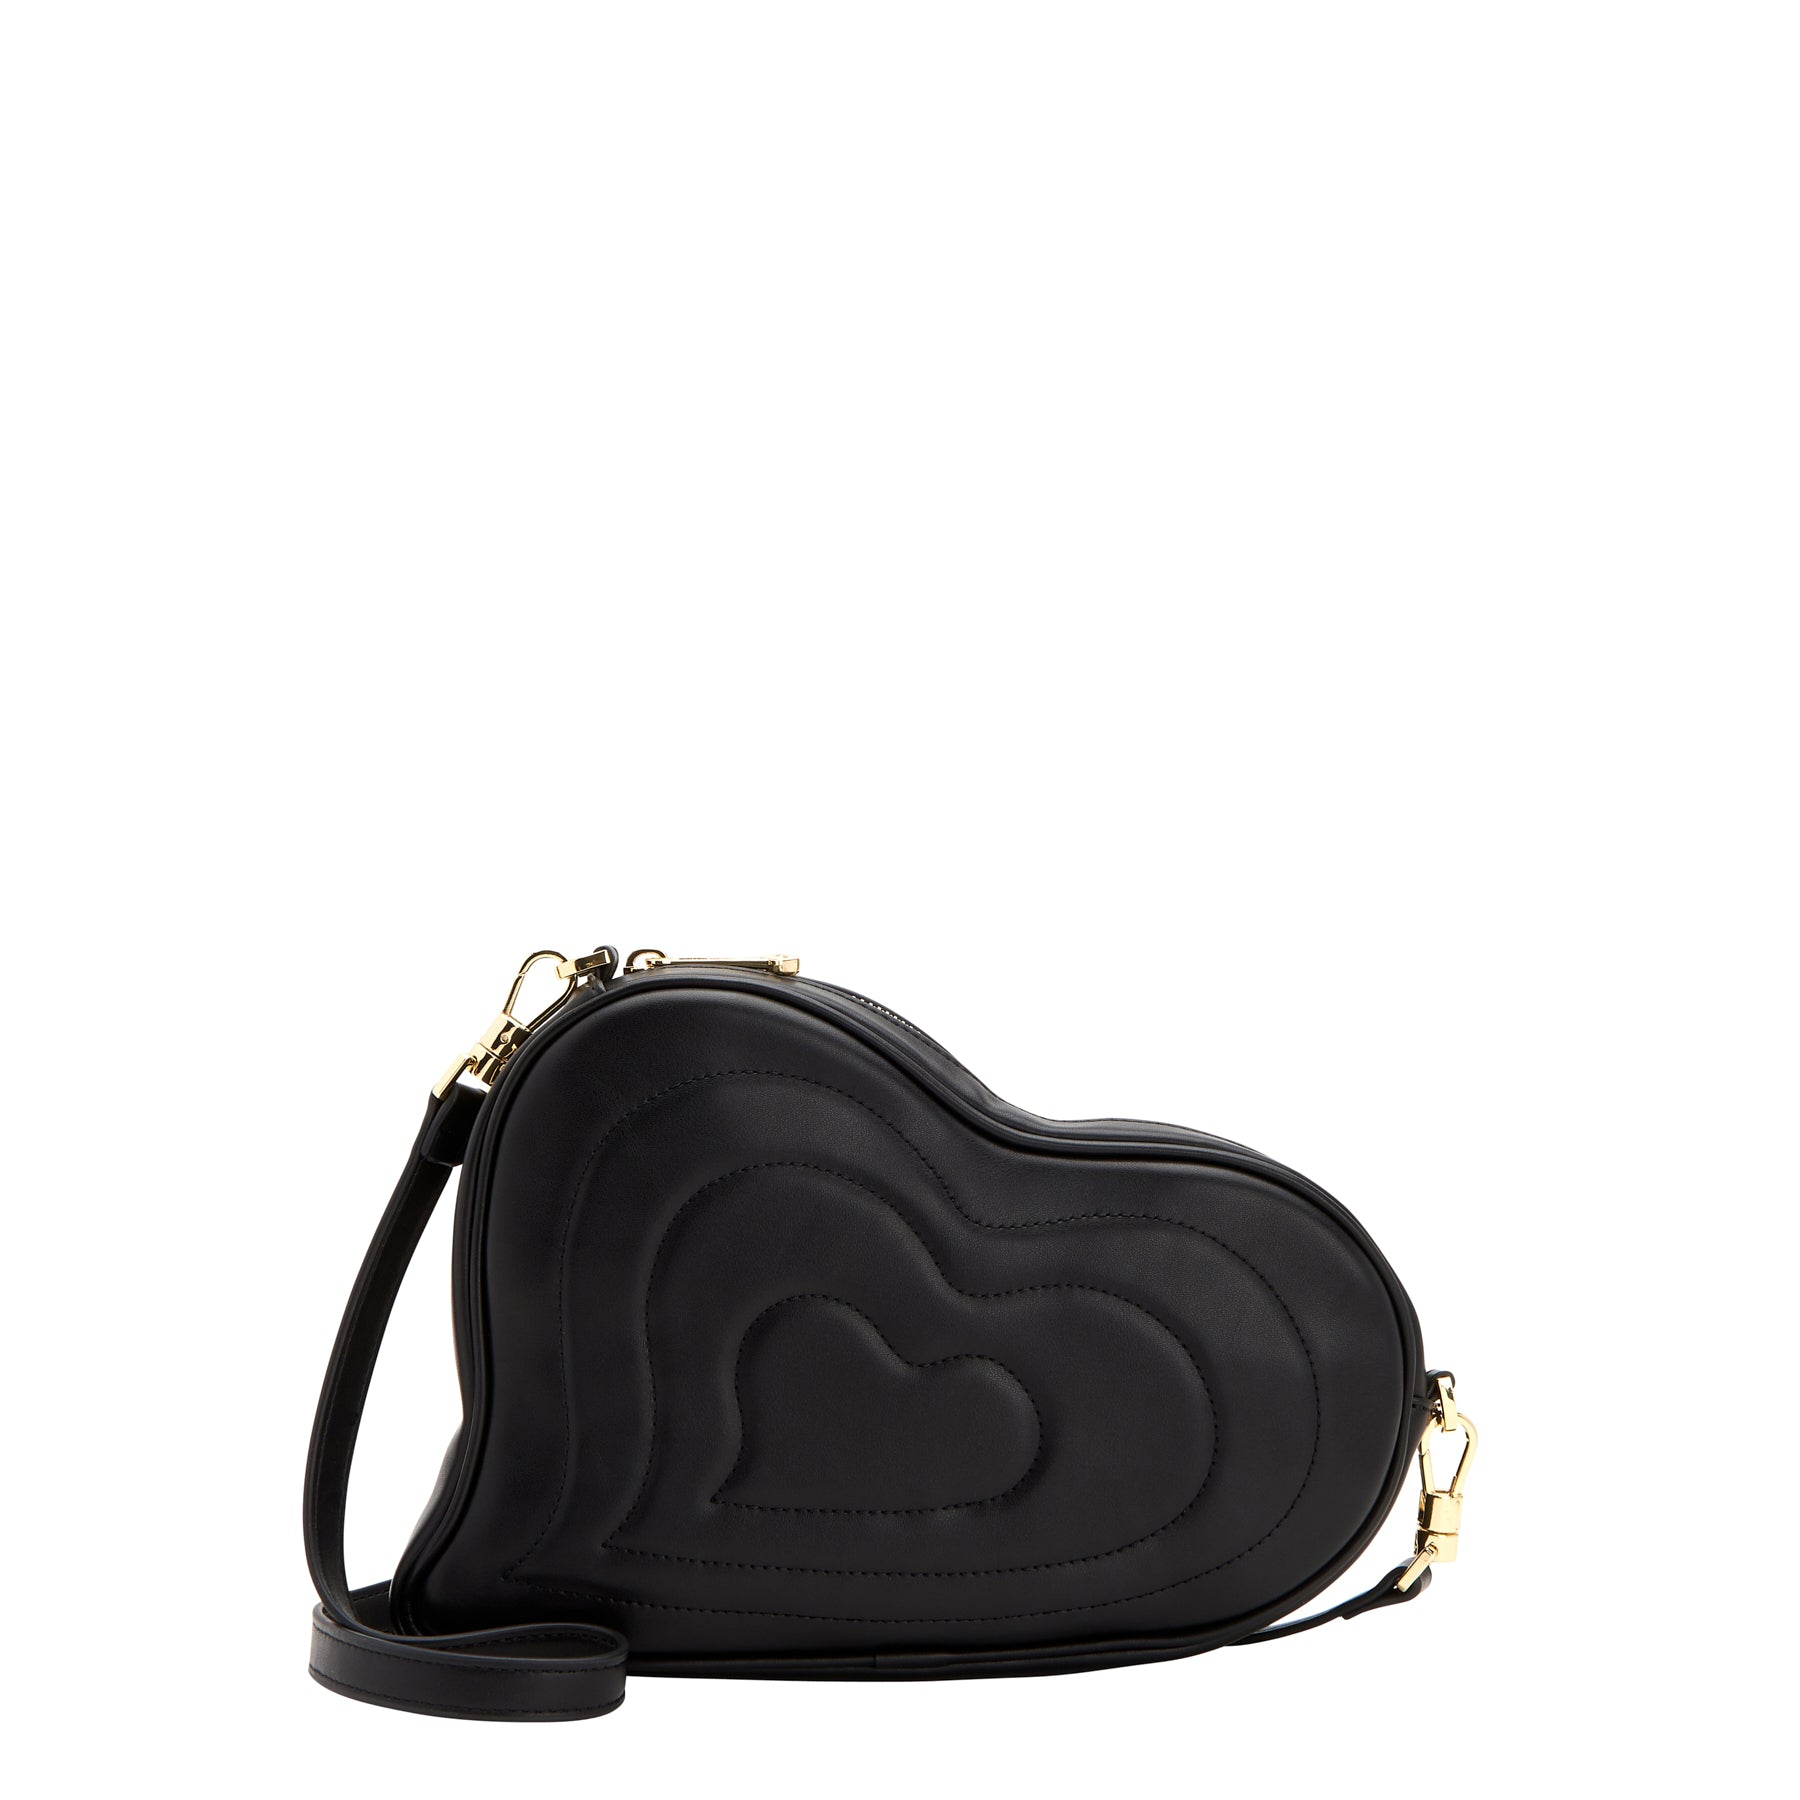 katy perry handbags the dolly in black